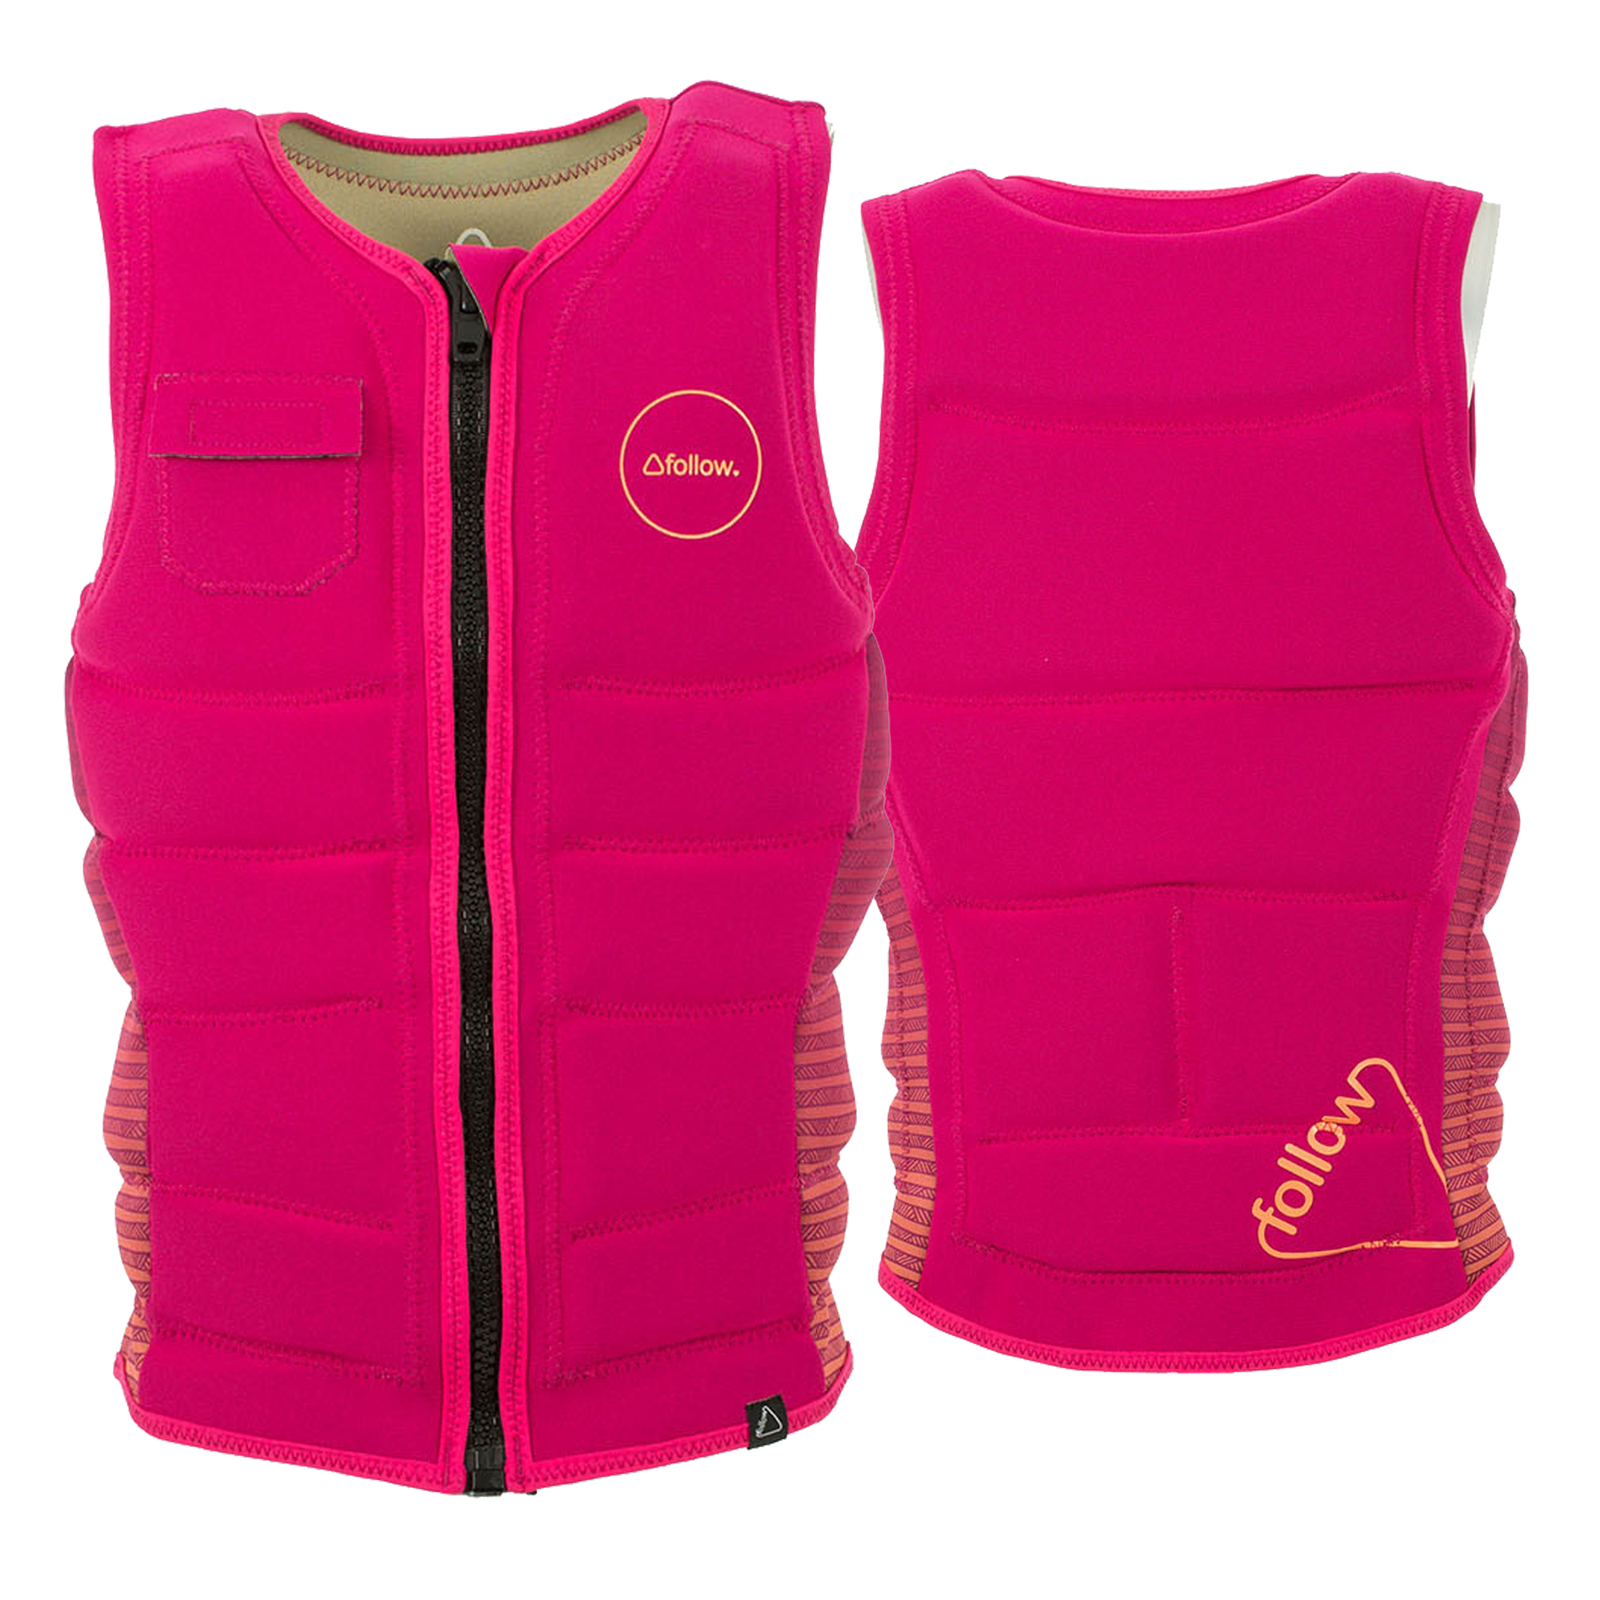 STOW LADIES IMPACT VEST - MAGENTA FOLLOW 2017